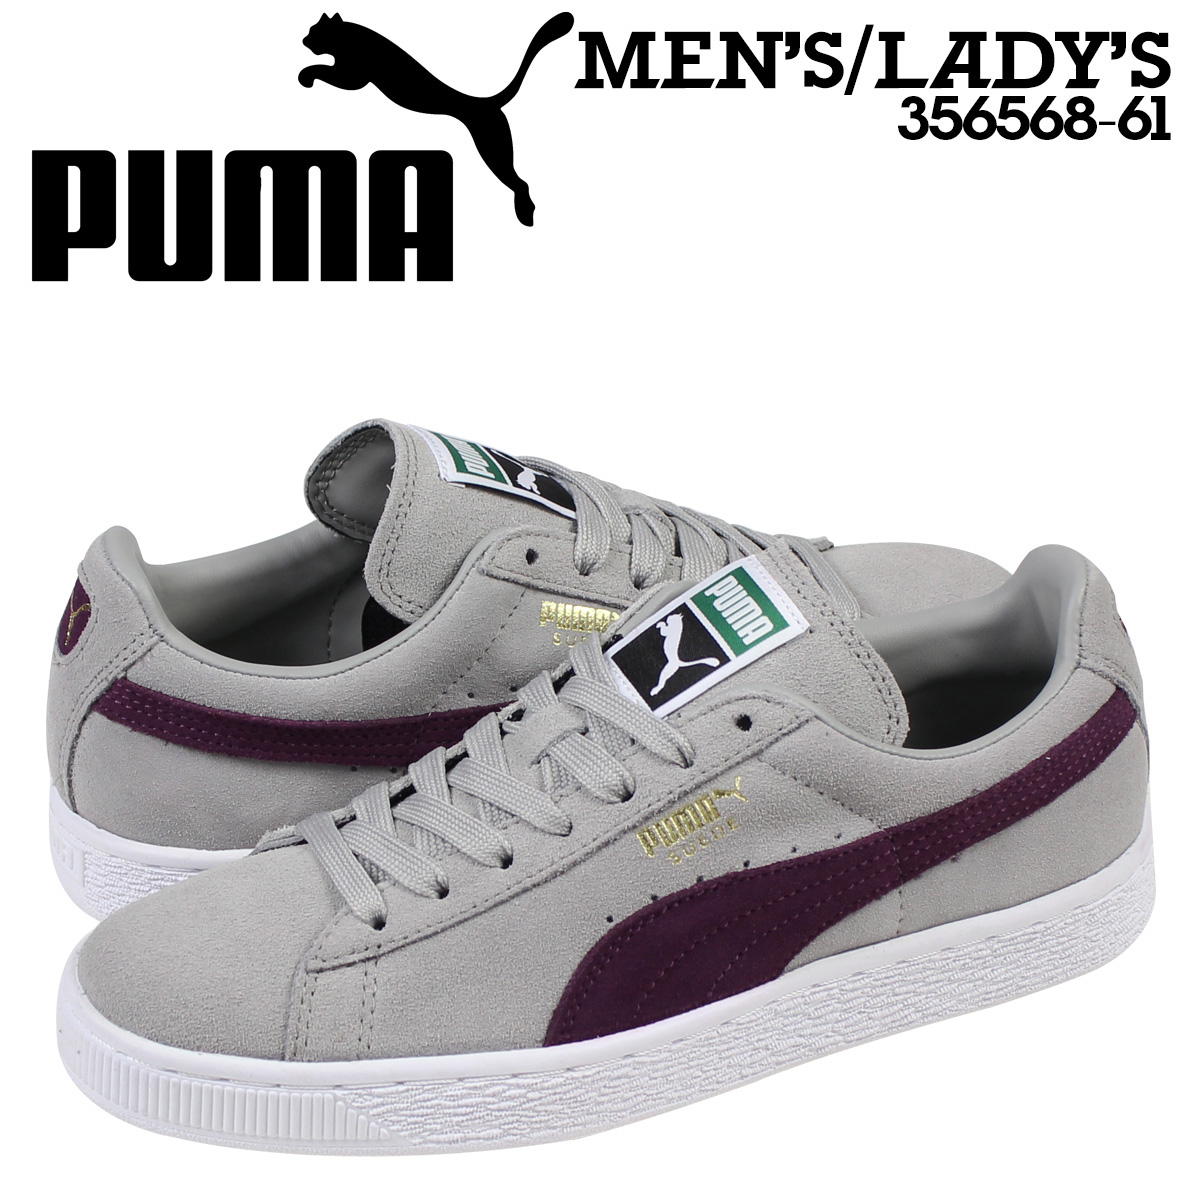 big sale 0876f 9c0aa PUMA Puma suede classical music sneakers SUEDE CLASSIC + 356,568-61 men's  lady's shoes gray